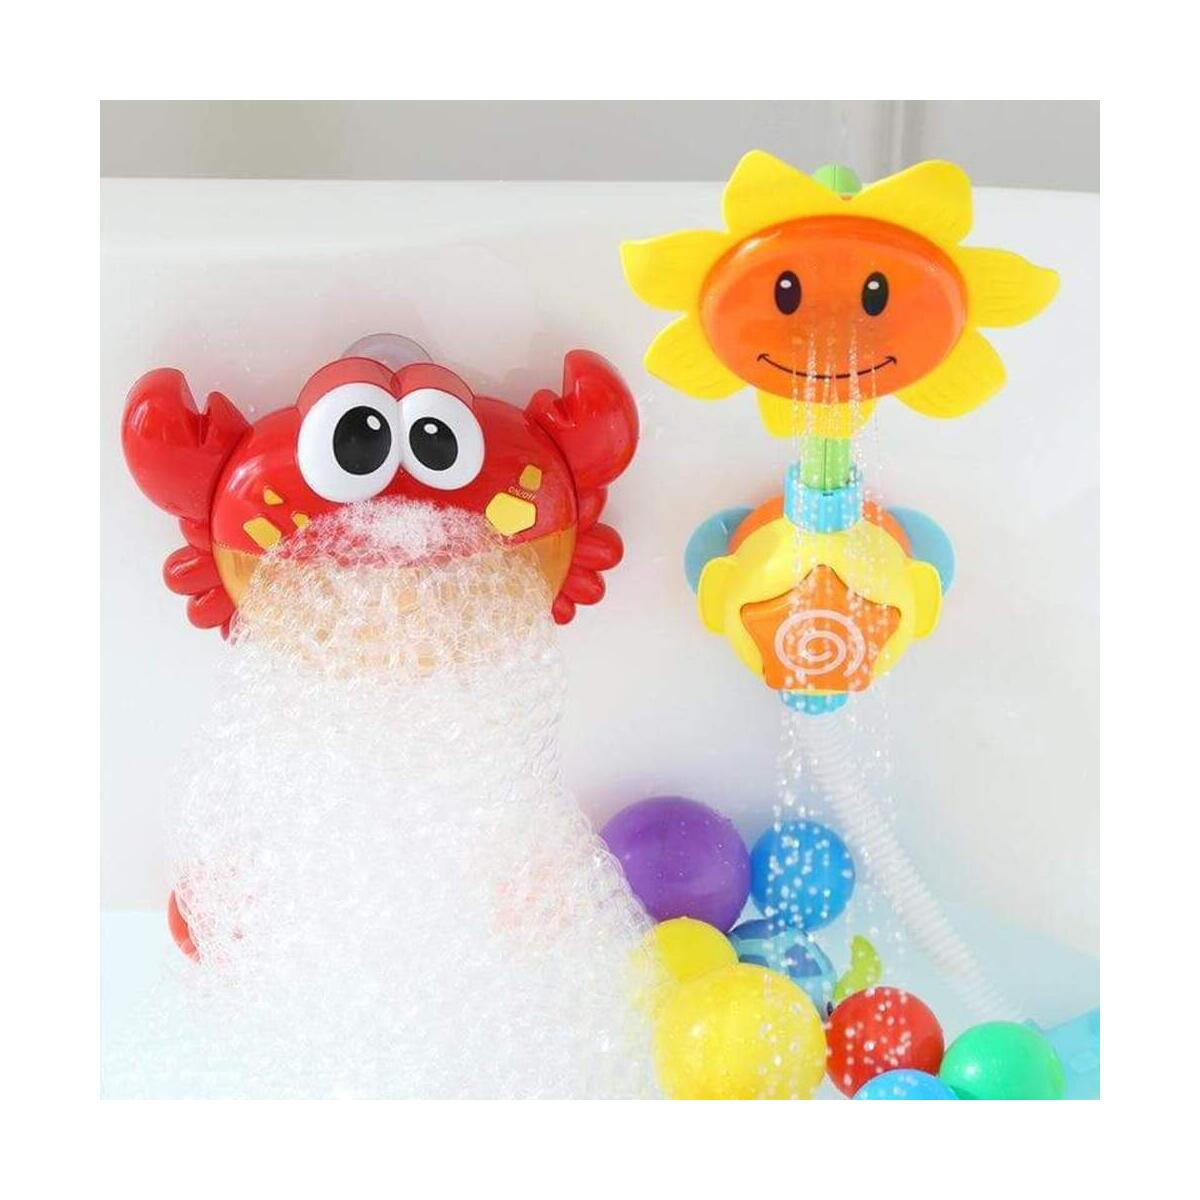 Red Plastic Crab Bubble Nursery Rhymes Machine Bubble Maker Baby Bath Toy